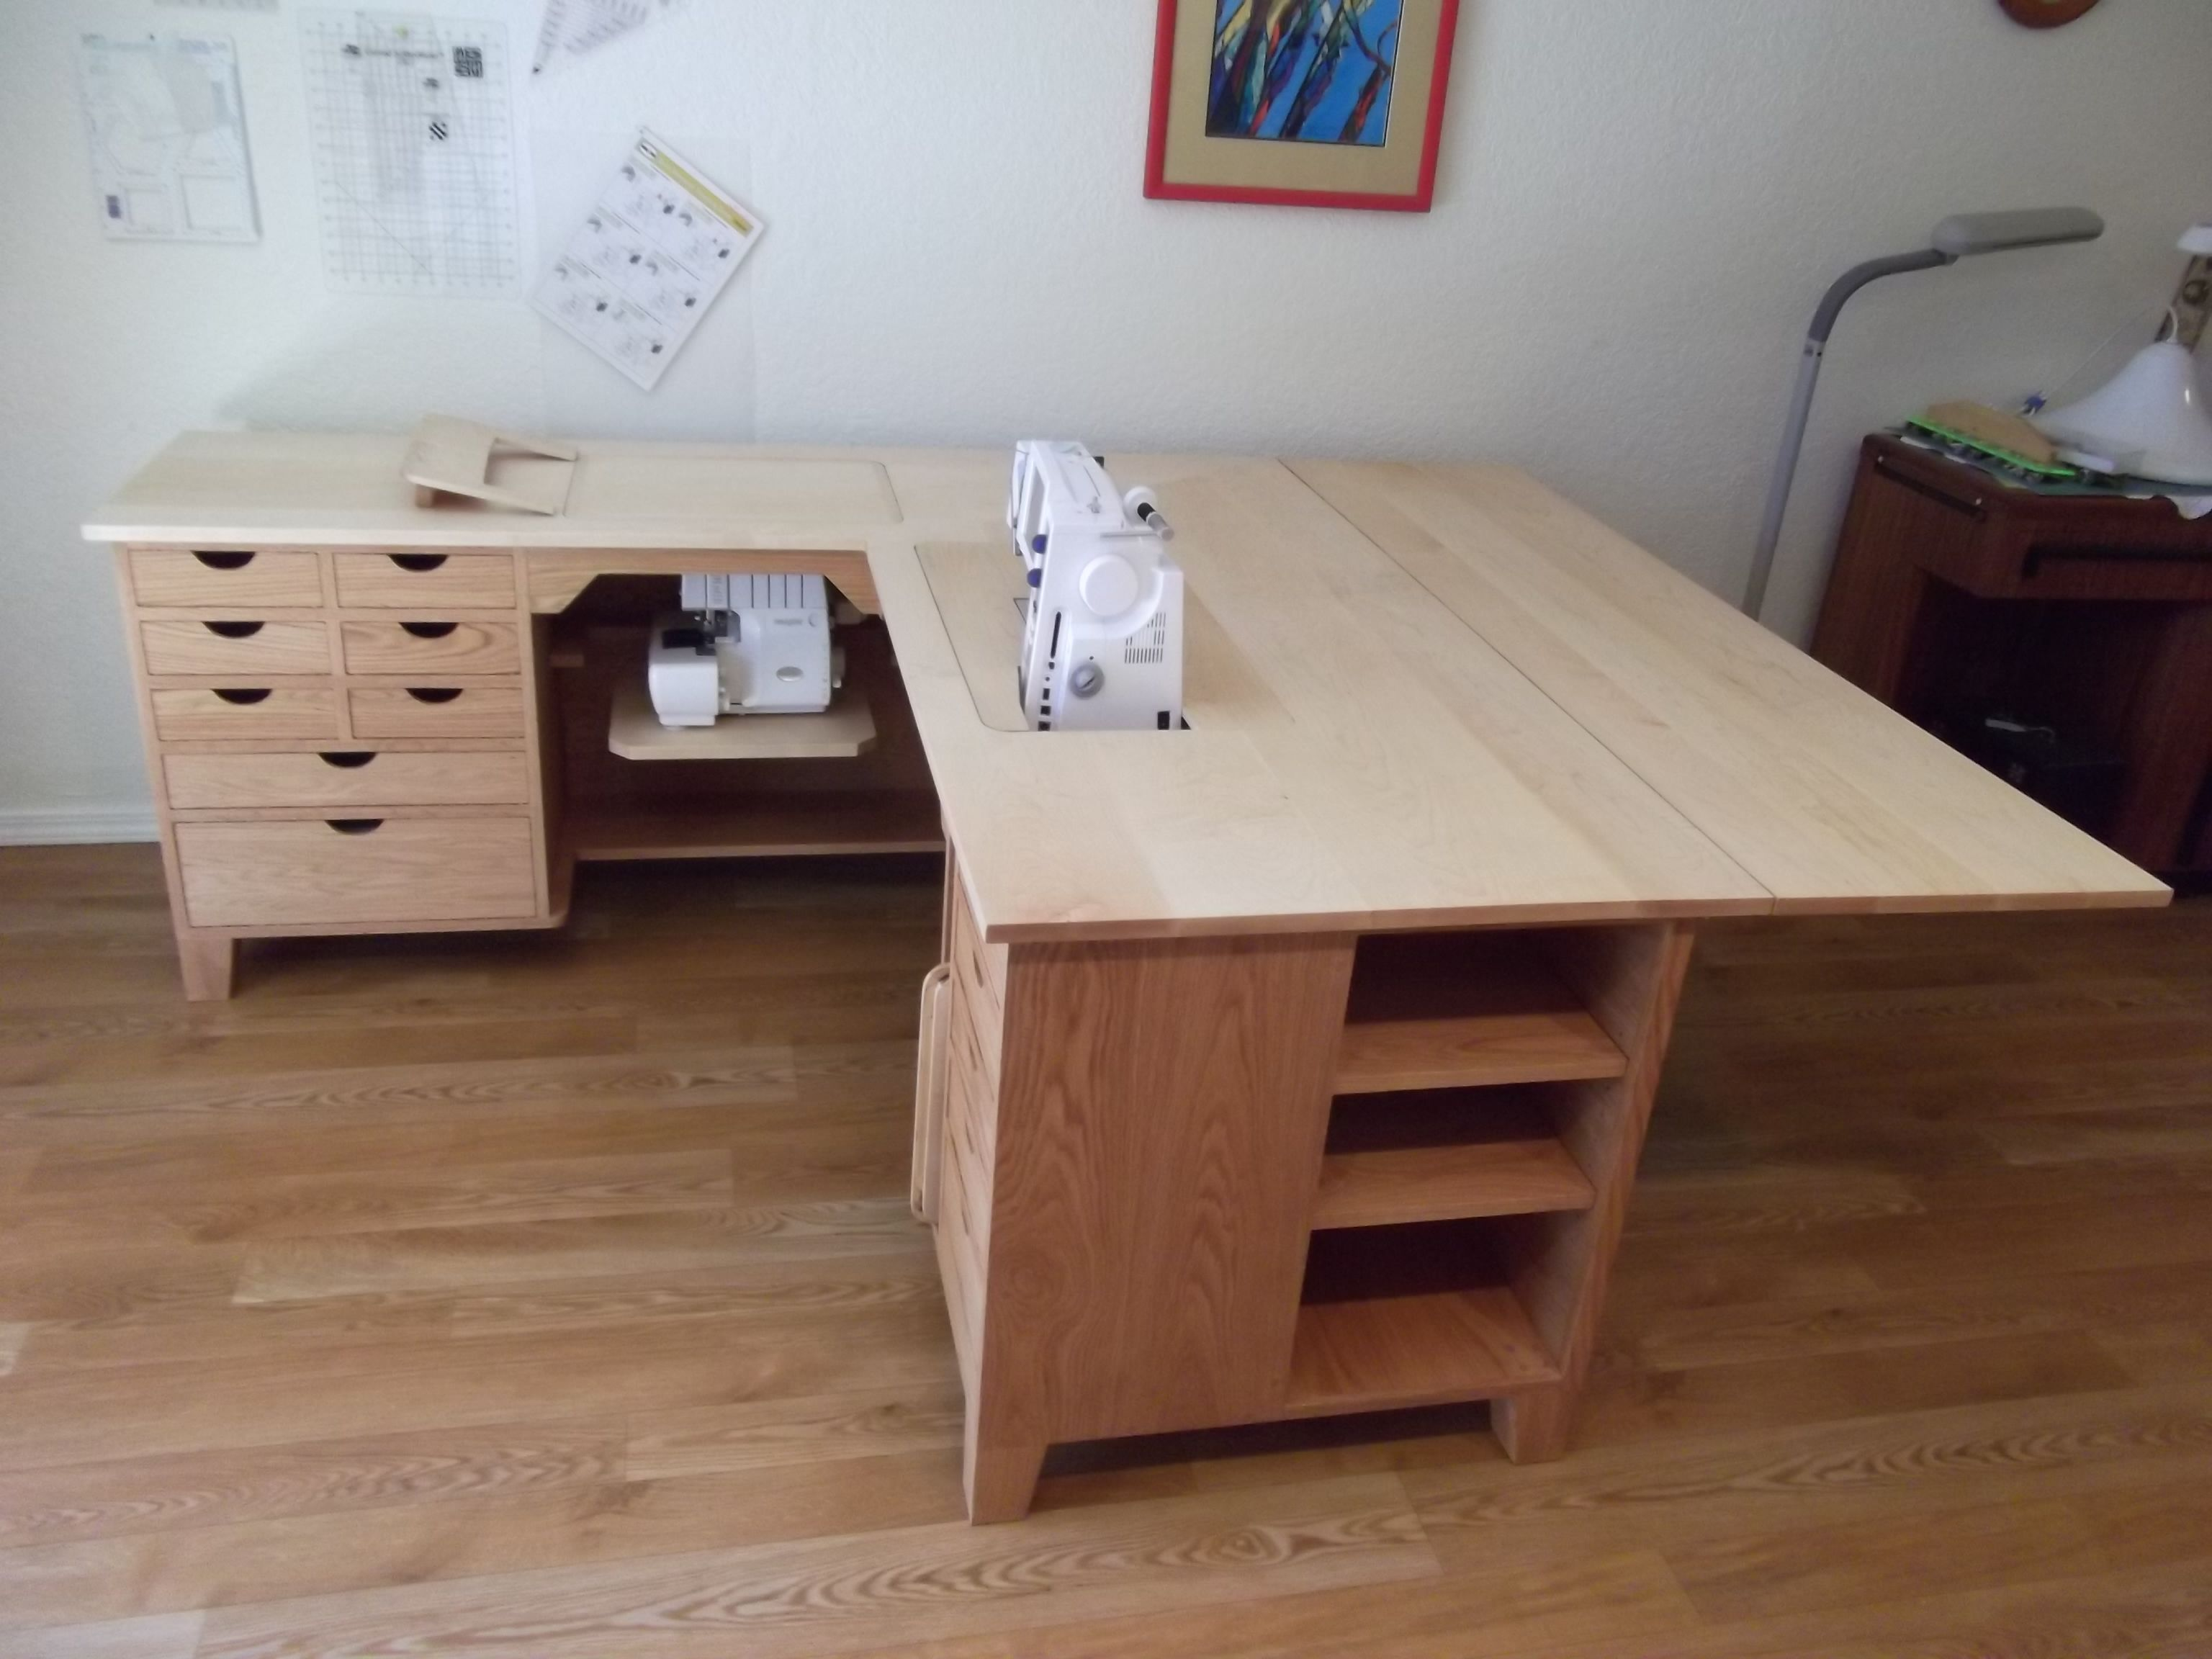 Quilting Sewing Desk With Drop Leaf Google Search Sewing Room